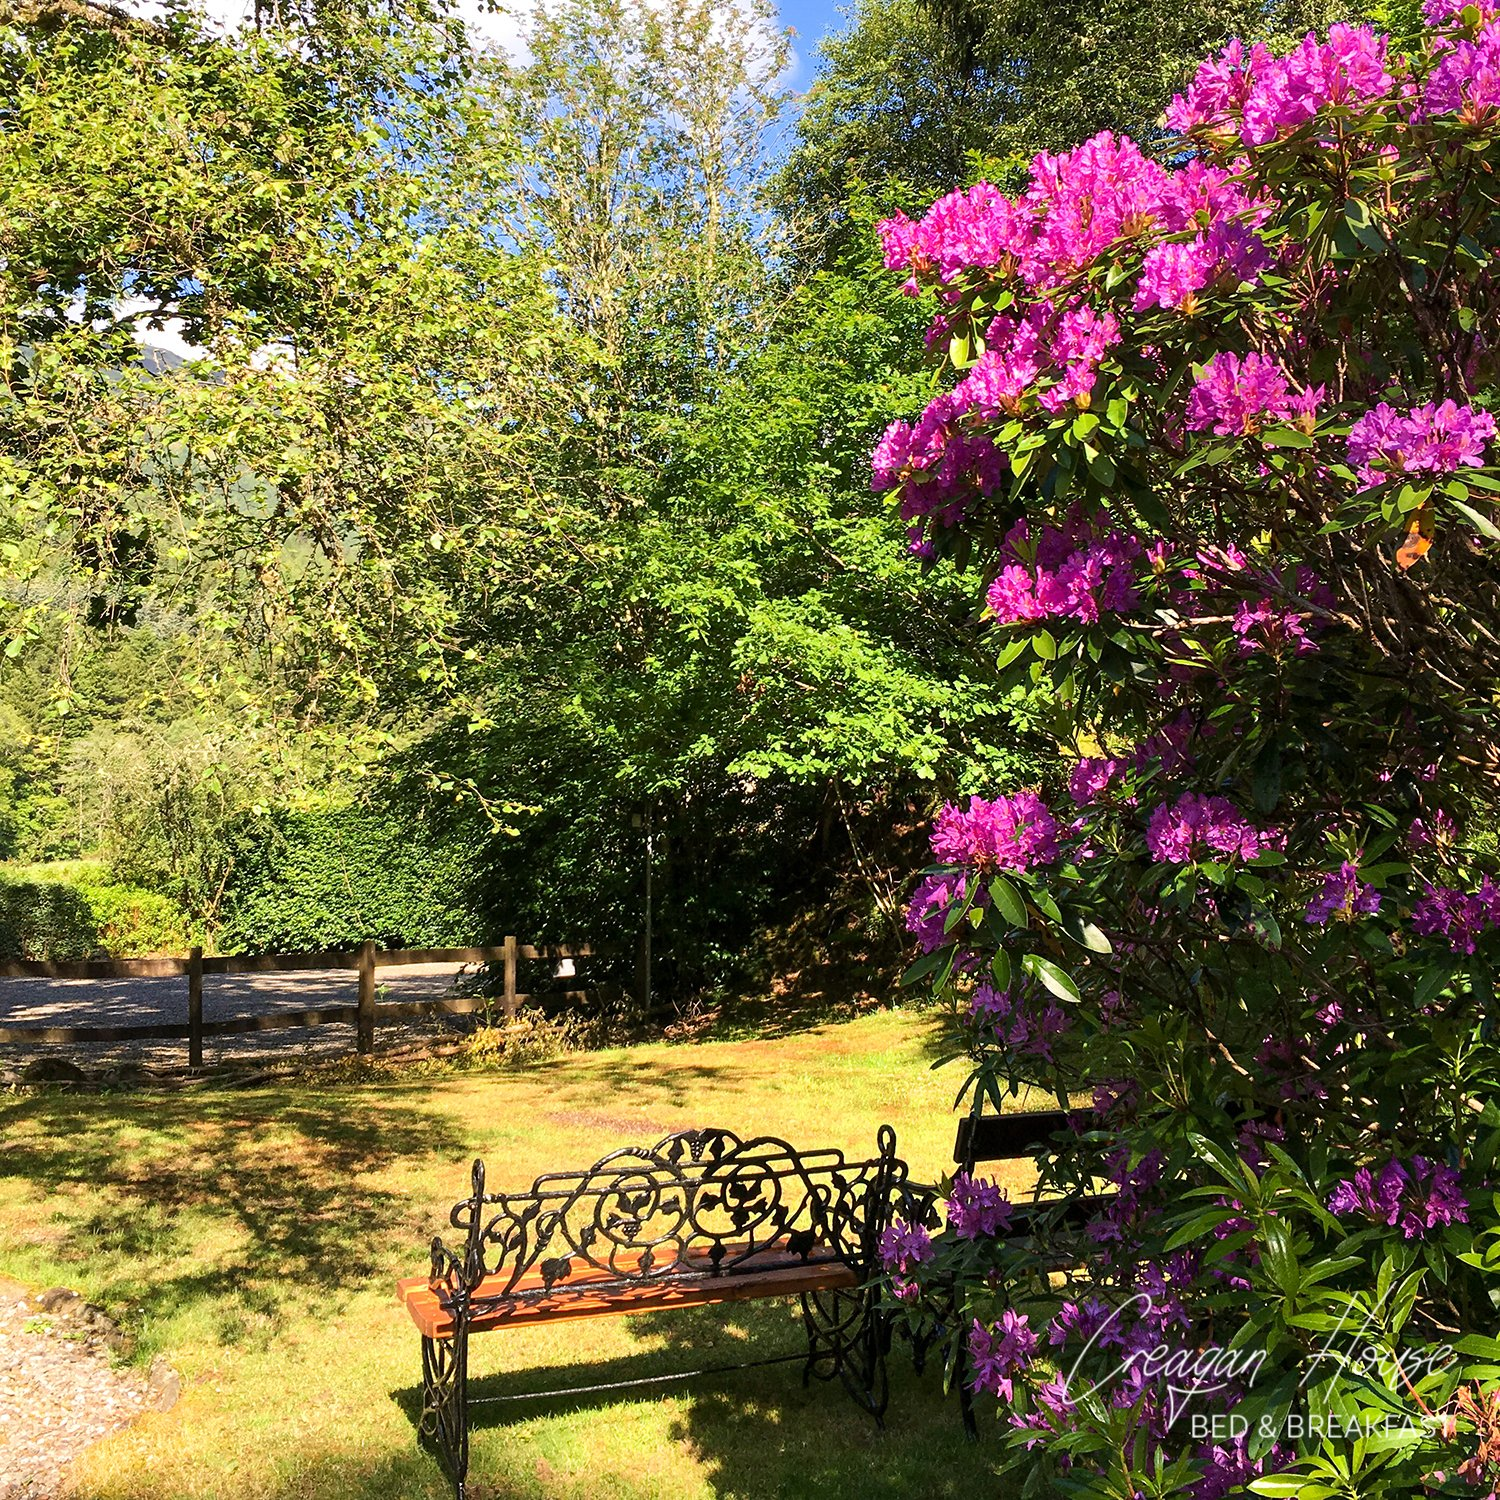 Sit beside the Rhododendrons